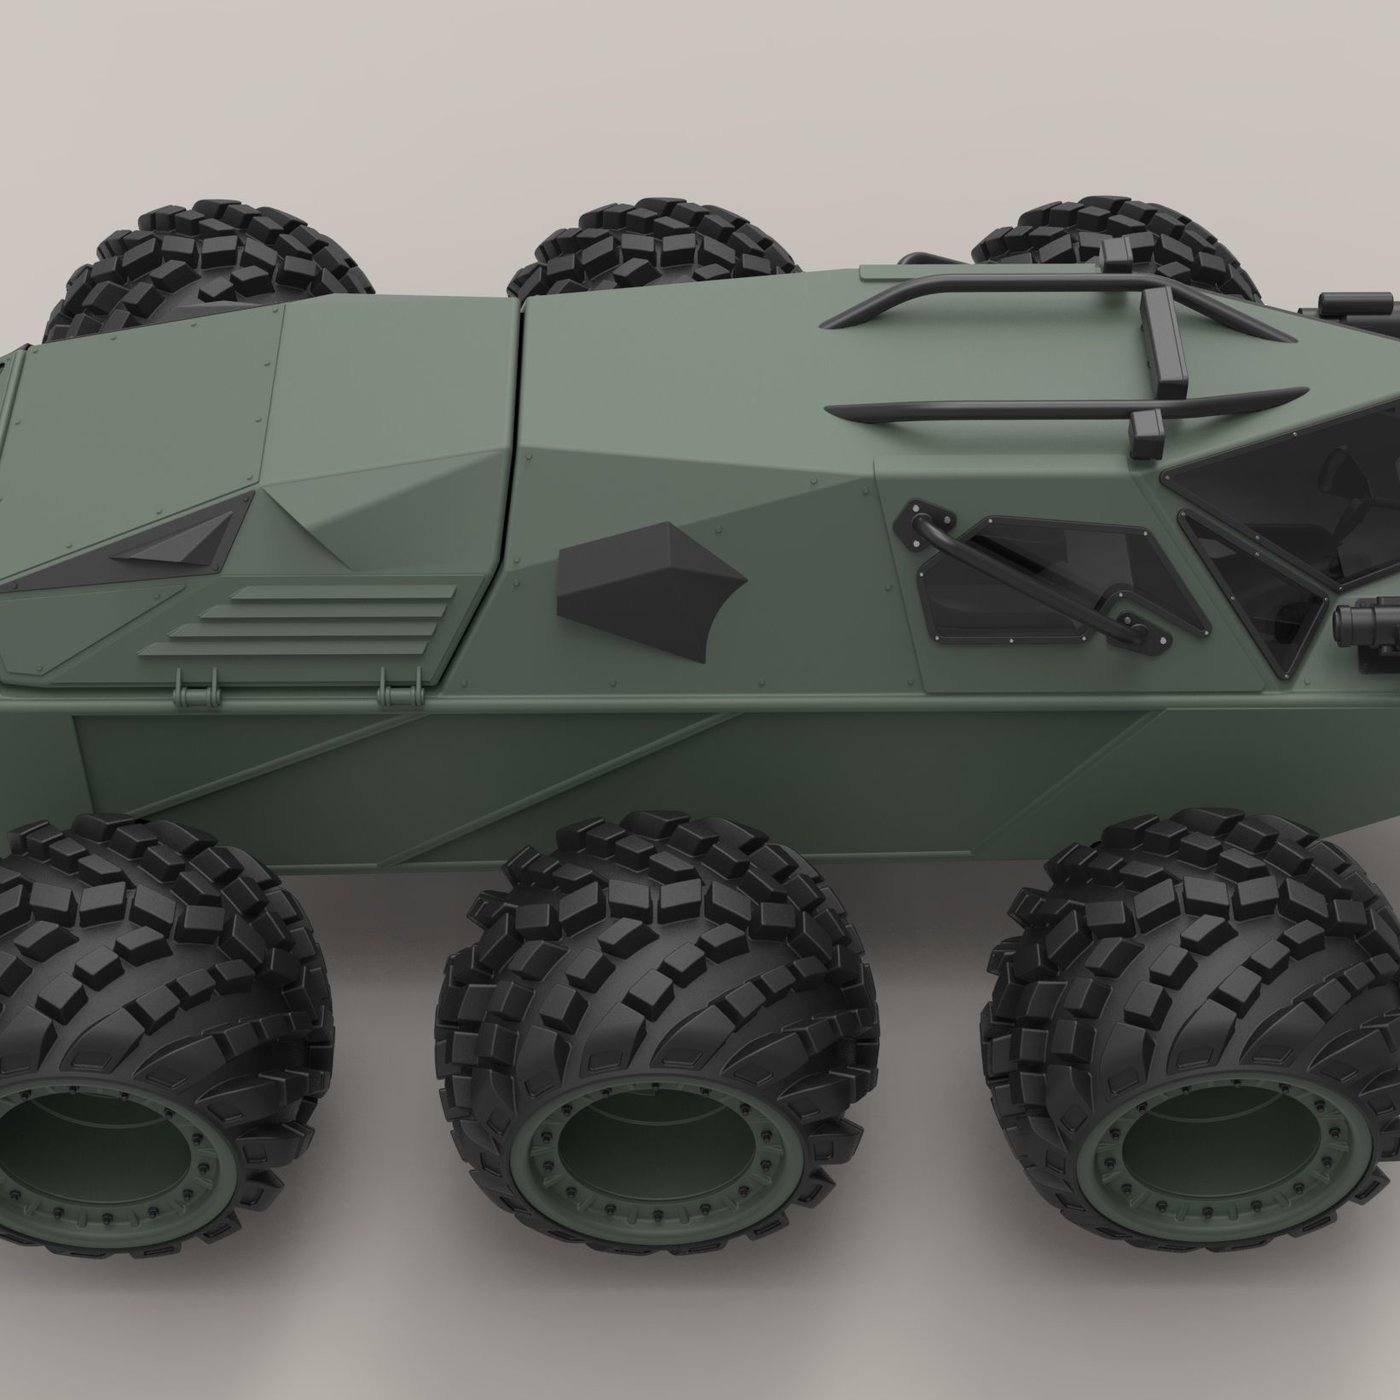 Concept military vehicle